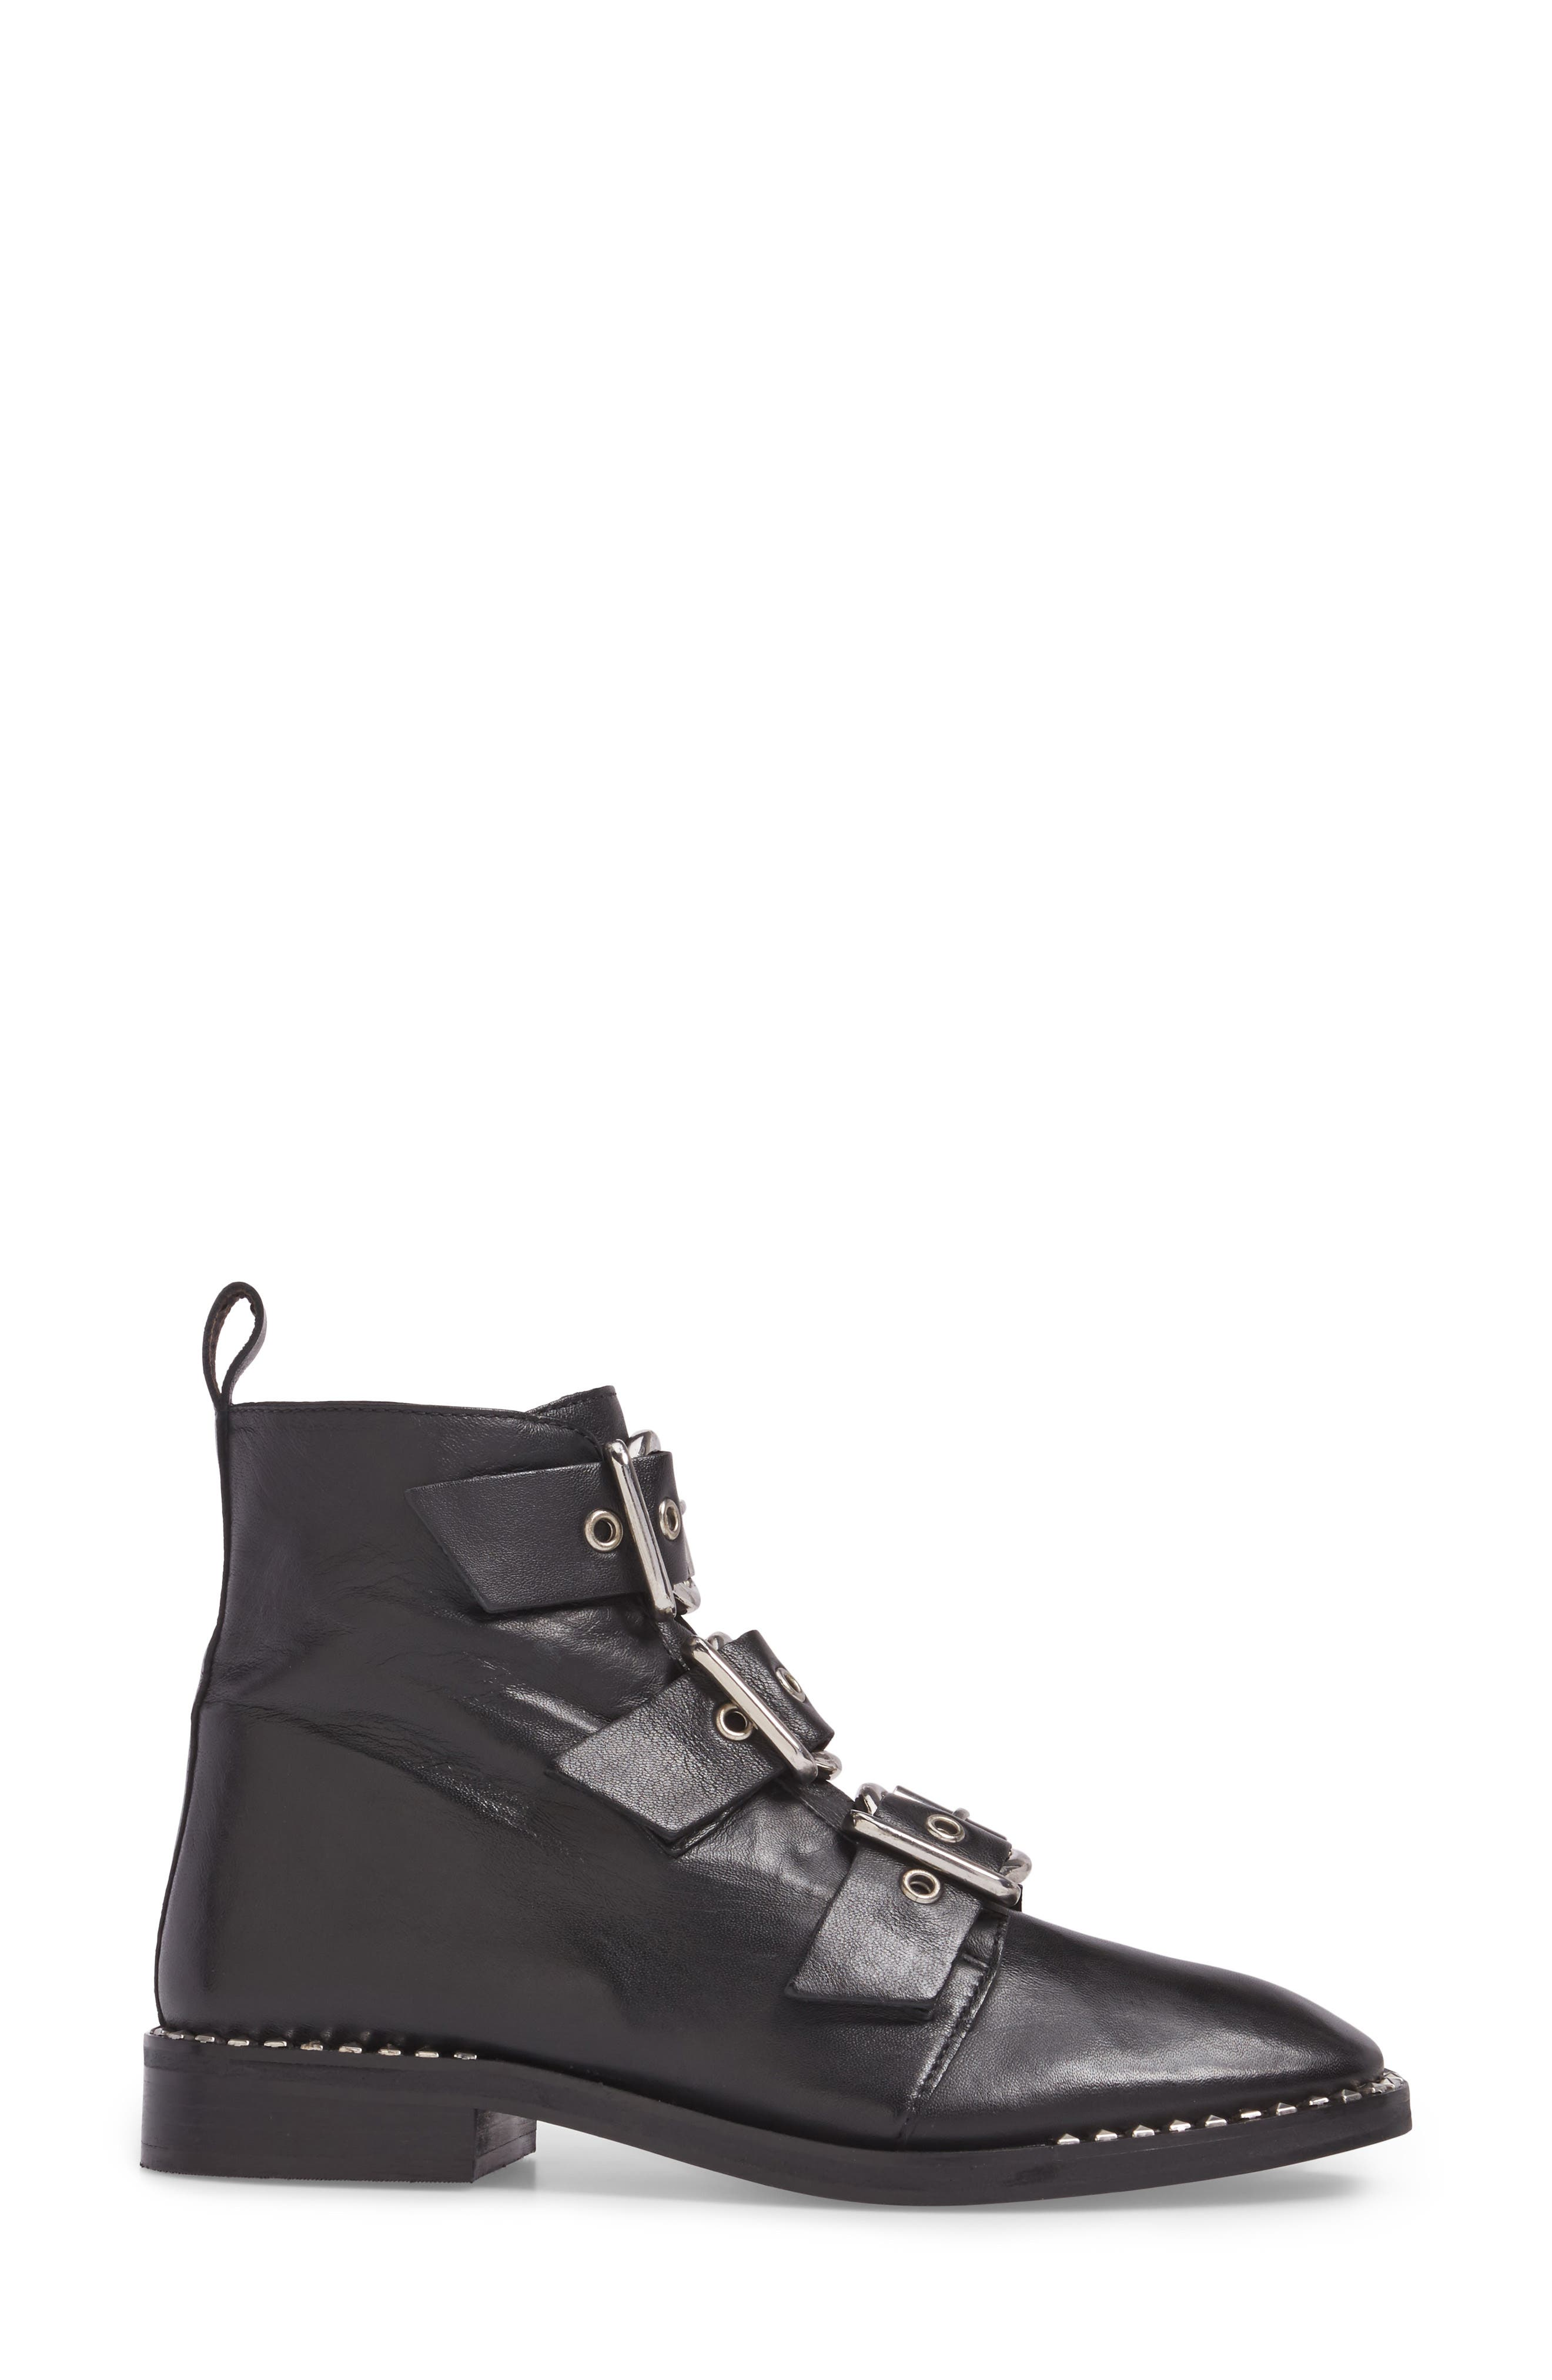 Alfie Buckle Ankle Boot,                             Alternate thumbnail 3, color,                             001